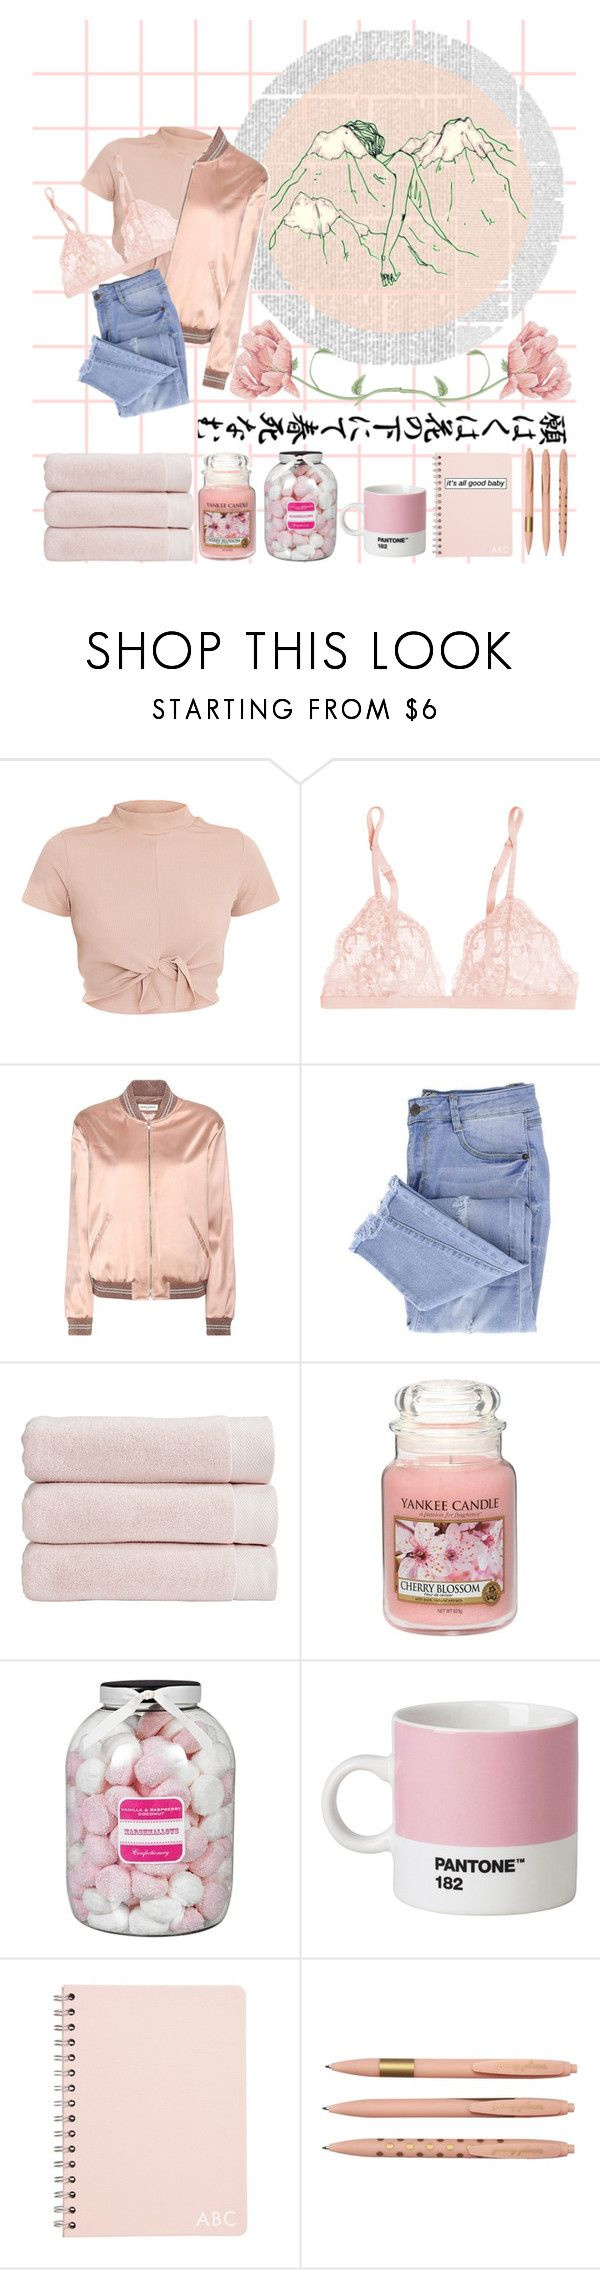 """""""Pastel Pink"""" by kookies-princess ❤ liked on Polyvore featuring La Perla, Yves Saint Laurent, Essie, Christy, Yankee Candle and Farhi by Nicole Farhi"""